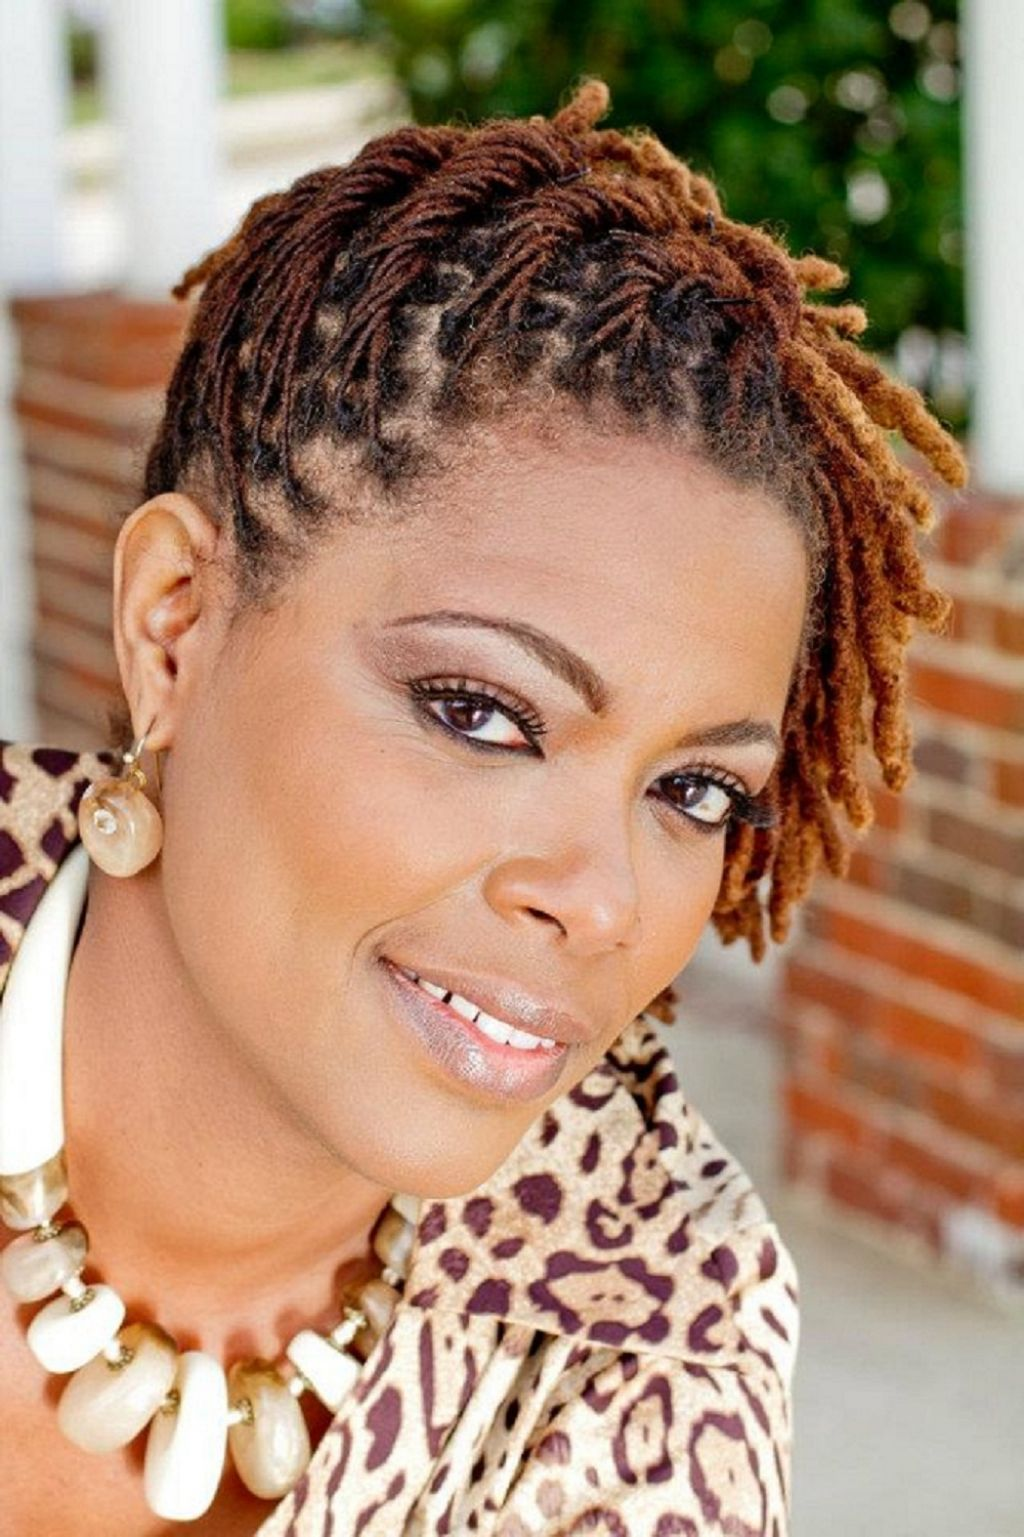 Different Hairstyles For Short Dreadlocks Jpg 1024 1537 Locs Hairstyles Short Locs Hairstyles Hair Styles